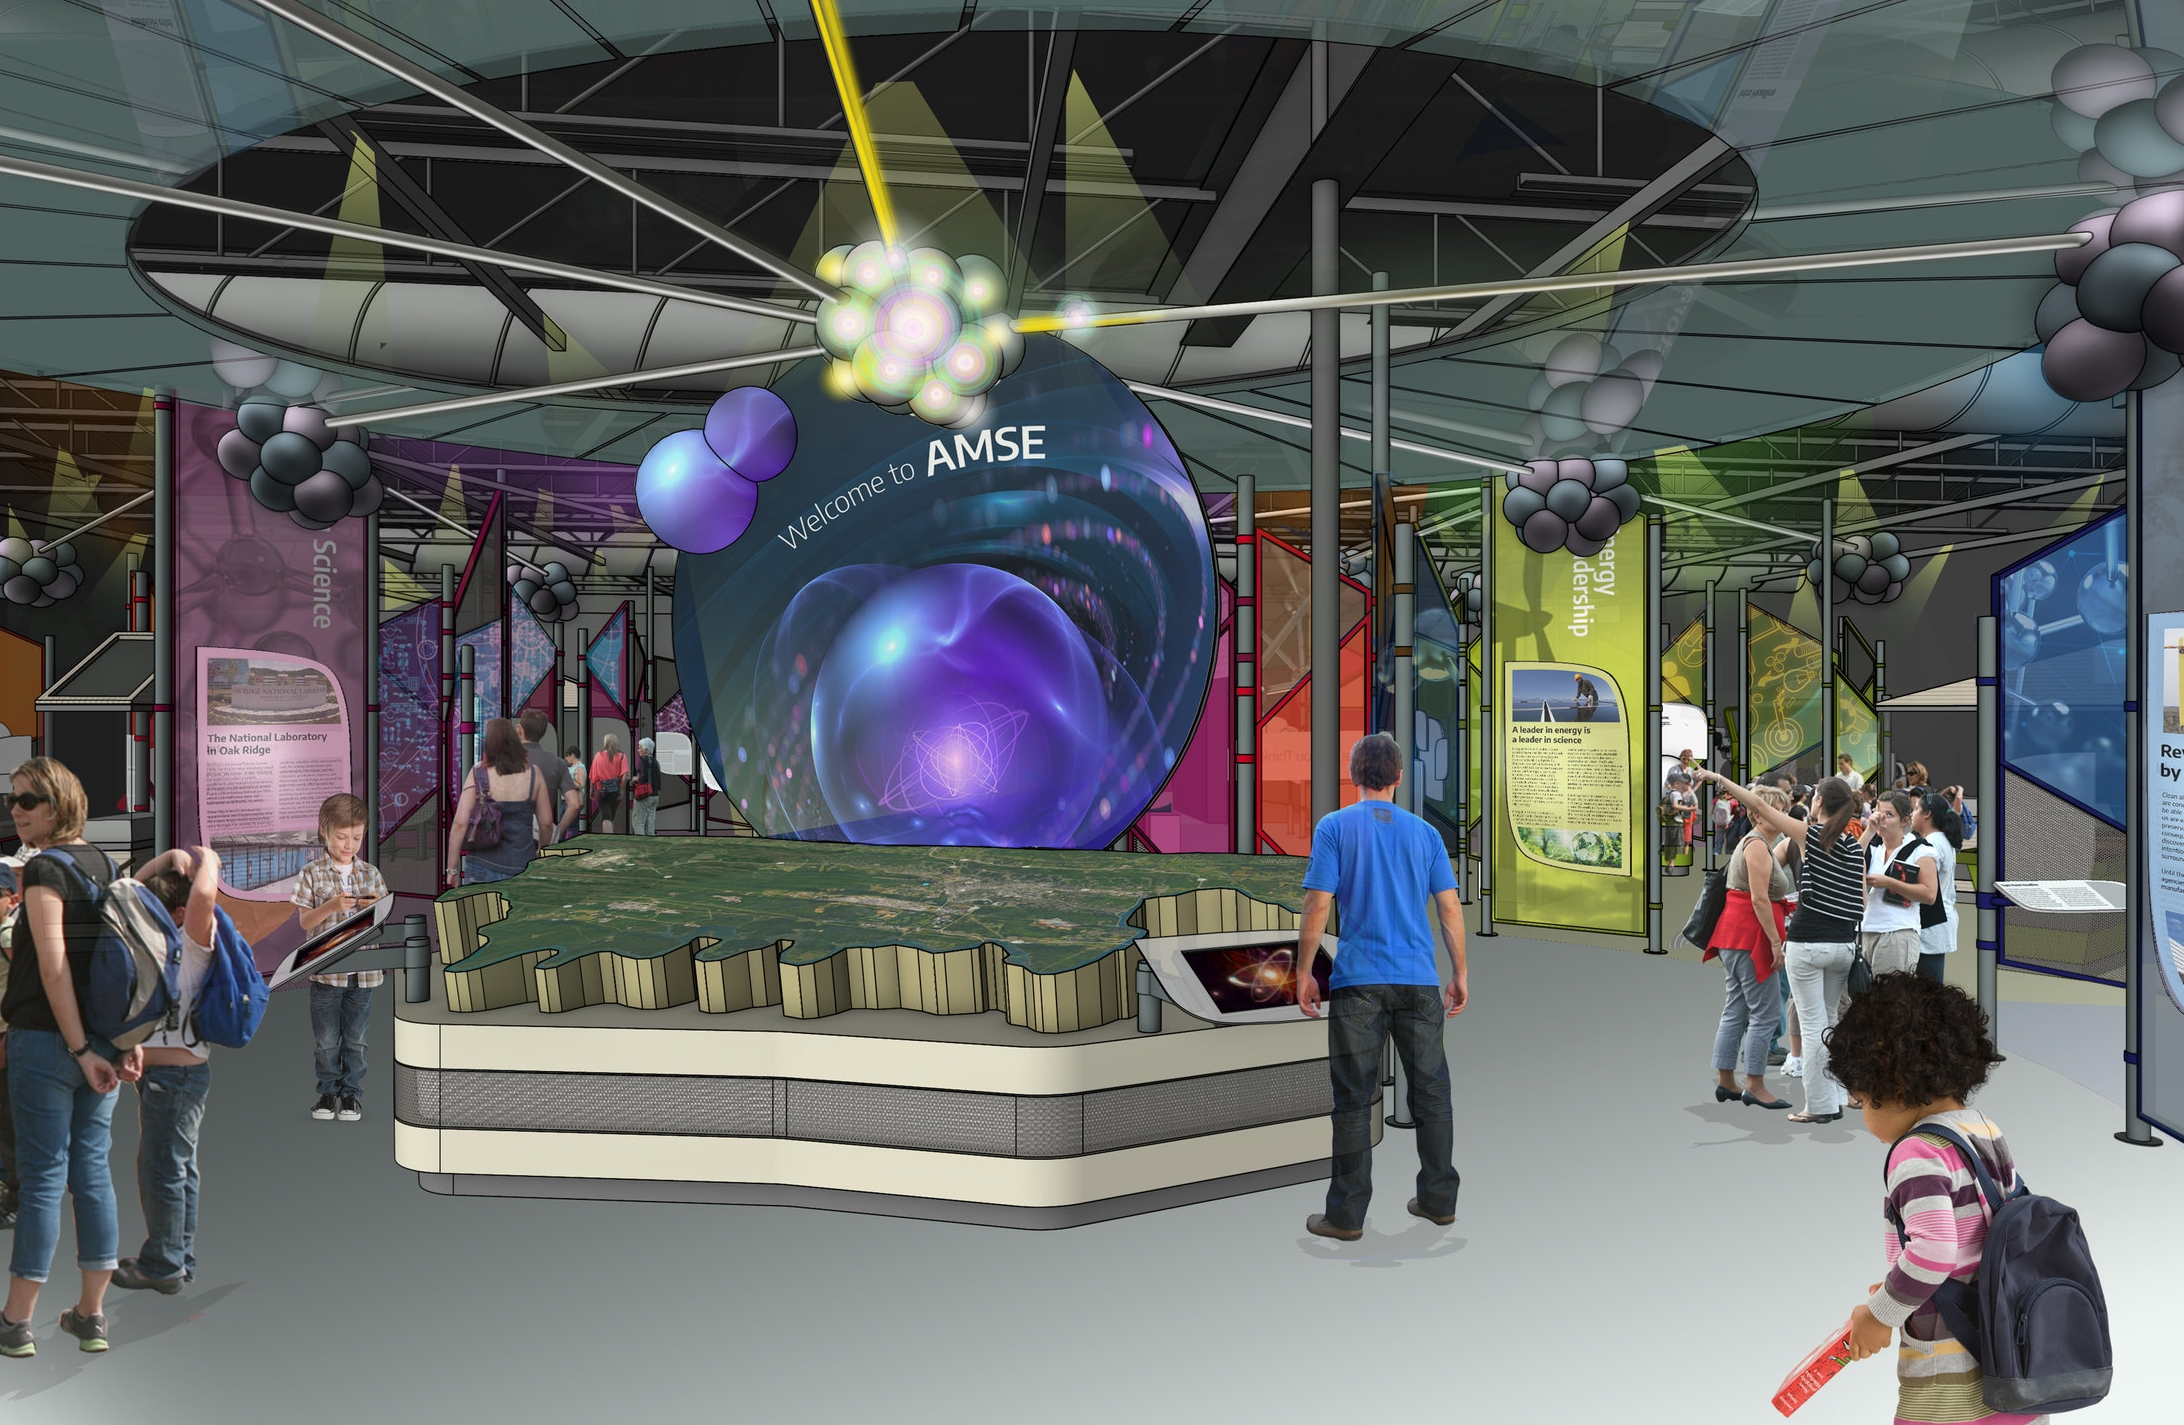 This rendering shows the proposed entrance and introductory area of the new museum exhibits, featuring an interactive map and digital multi-media display.